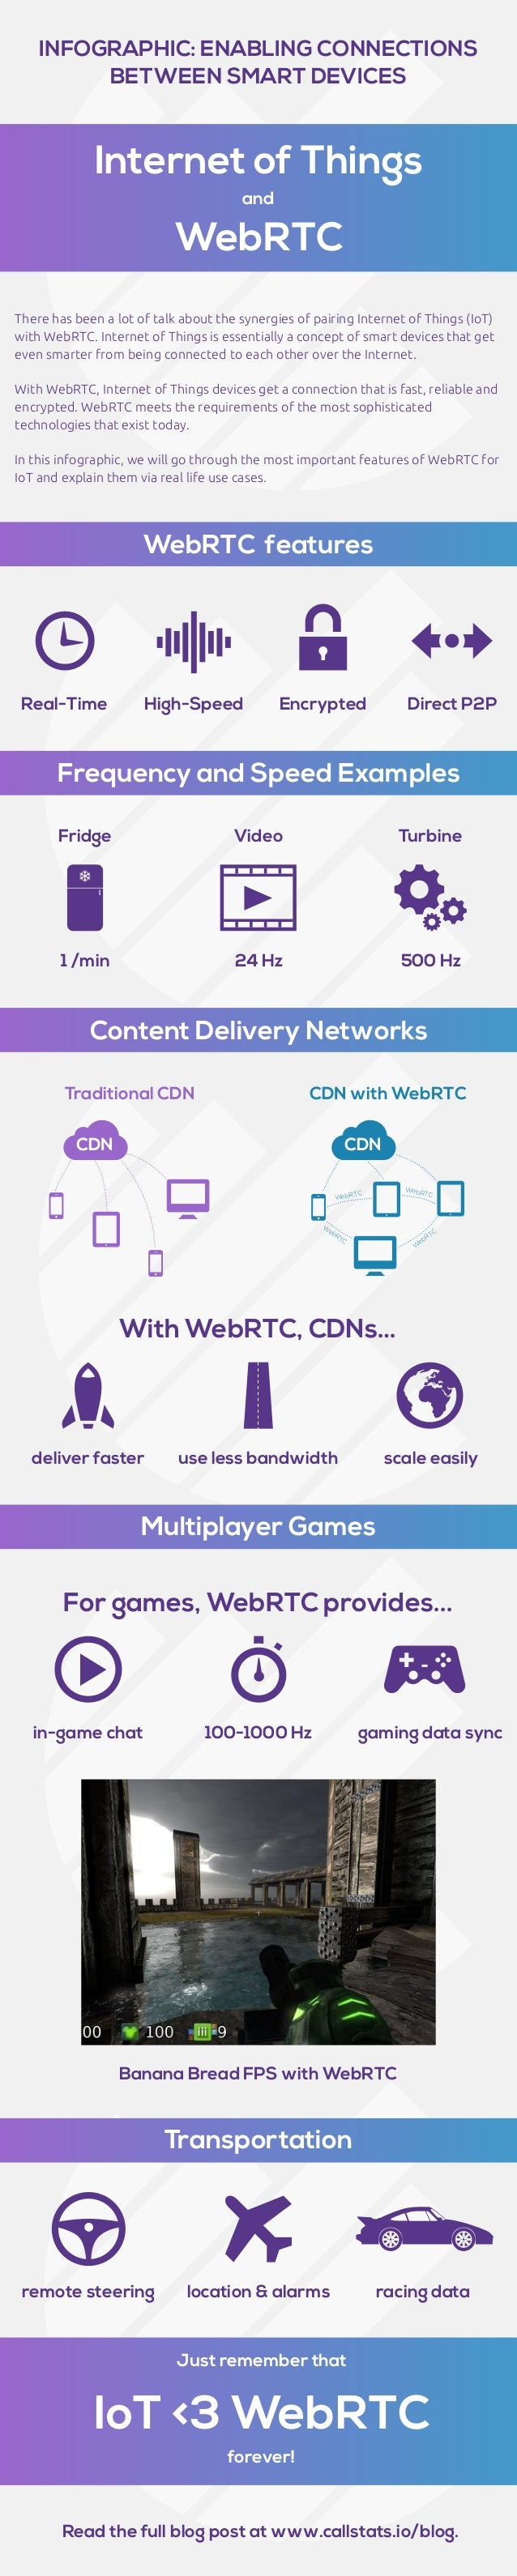 Just remember that forever! IoT <3 WebRTC INFOGRAPHIC: ENABLING CONNECTIONS BETWEEN SMART DEVICES CDN WebRTC W ebRTC W ebR...